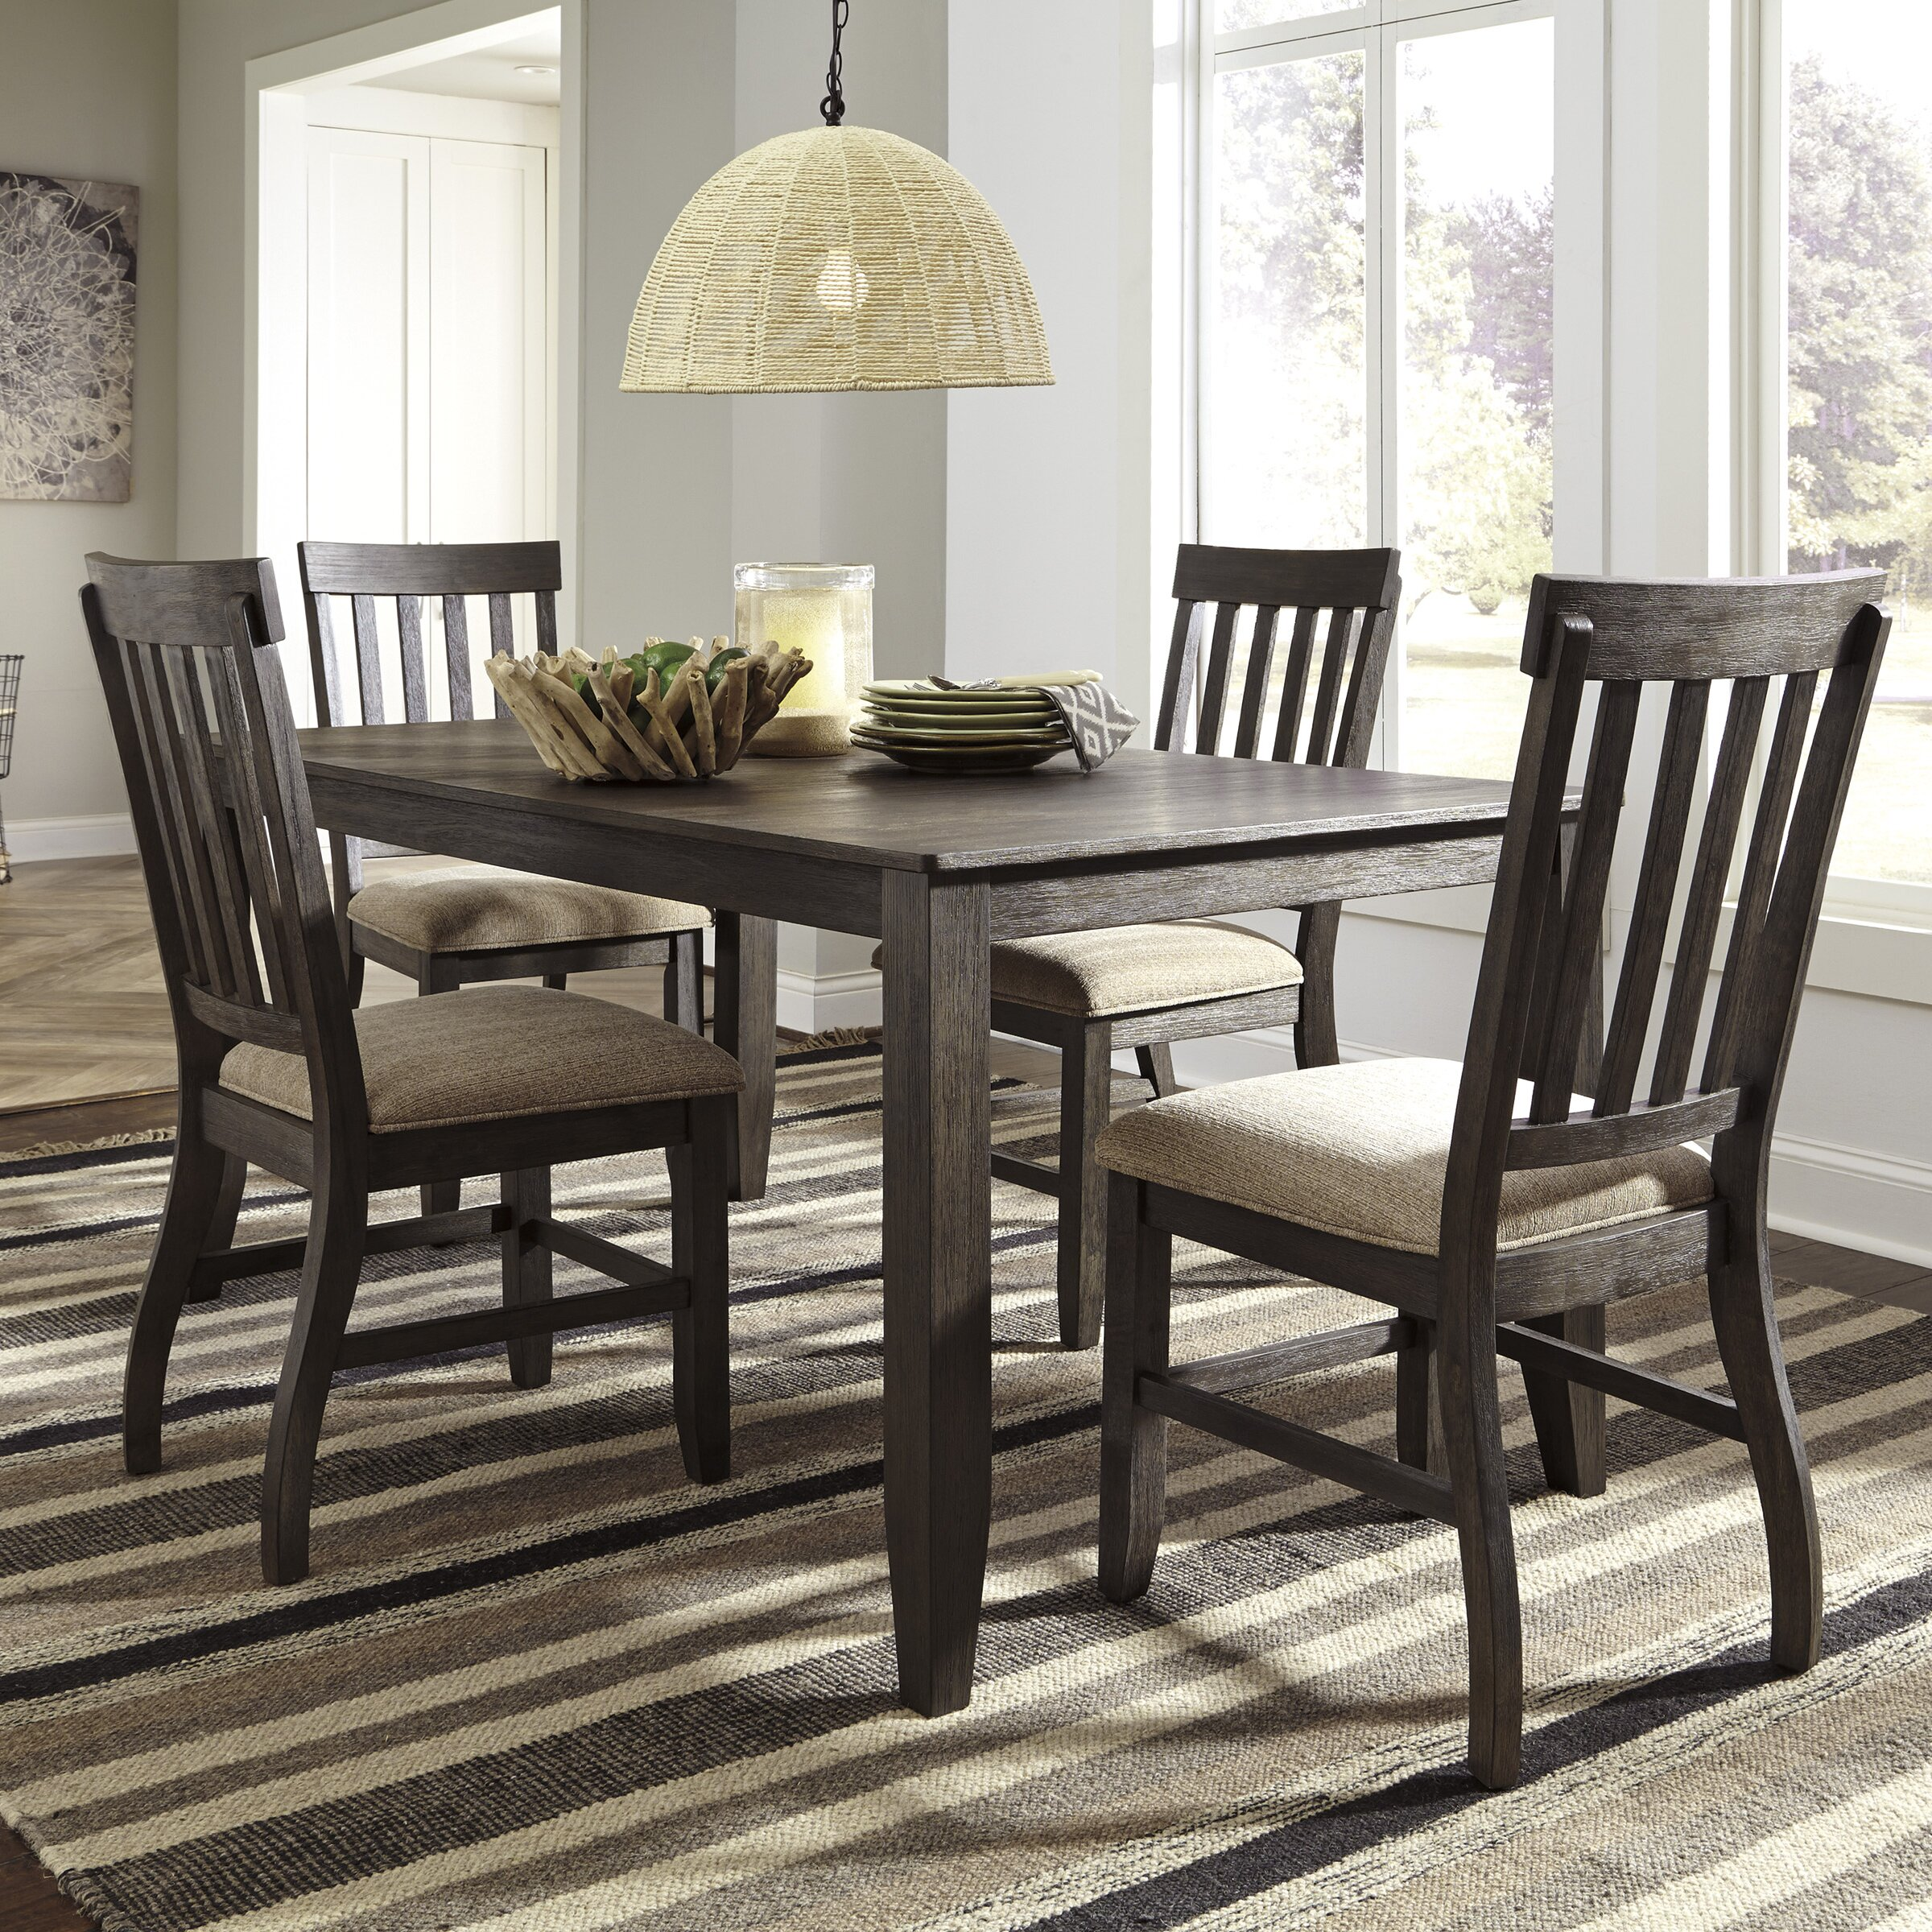 Signature Design By Ashley Dining Table & Reviews